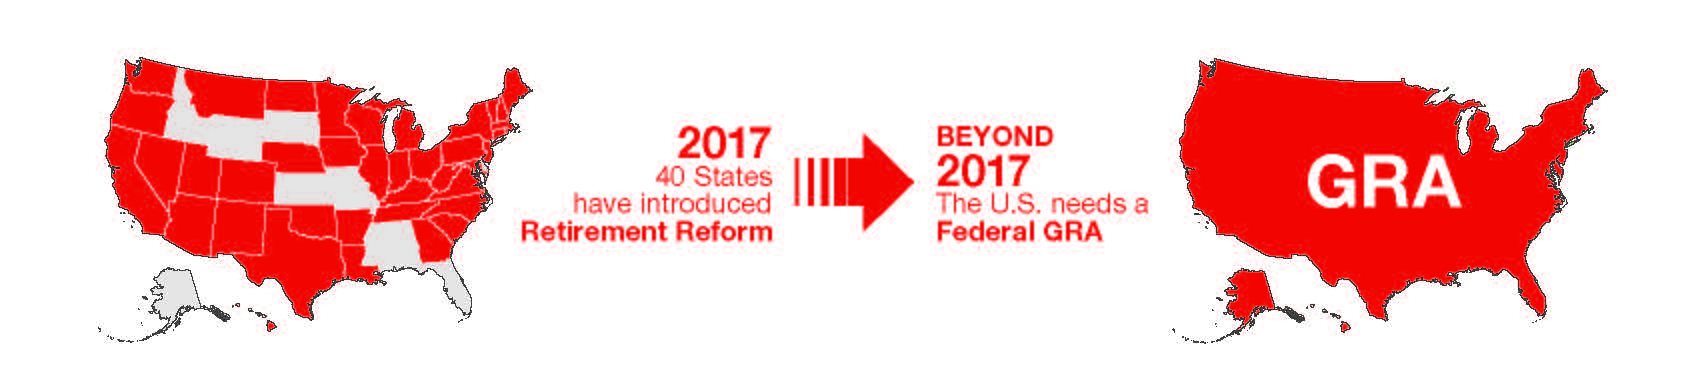 TNS Infographic StateToFederalPrograms Future 2017UPDATED 102417